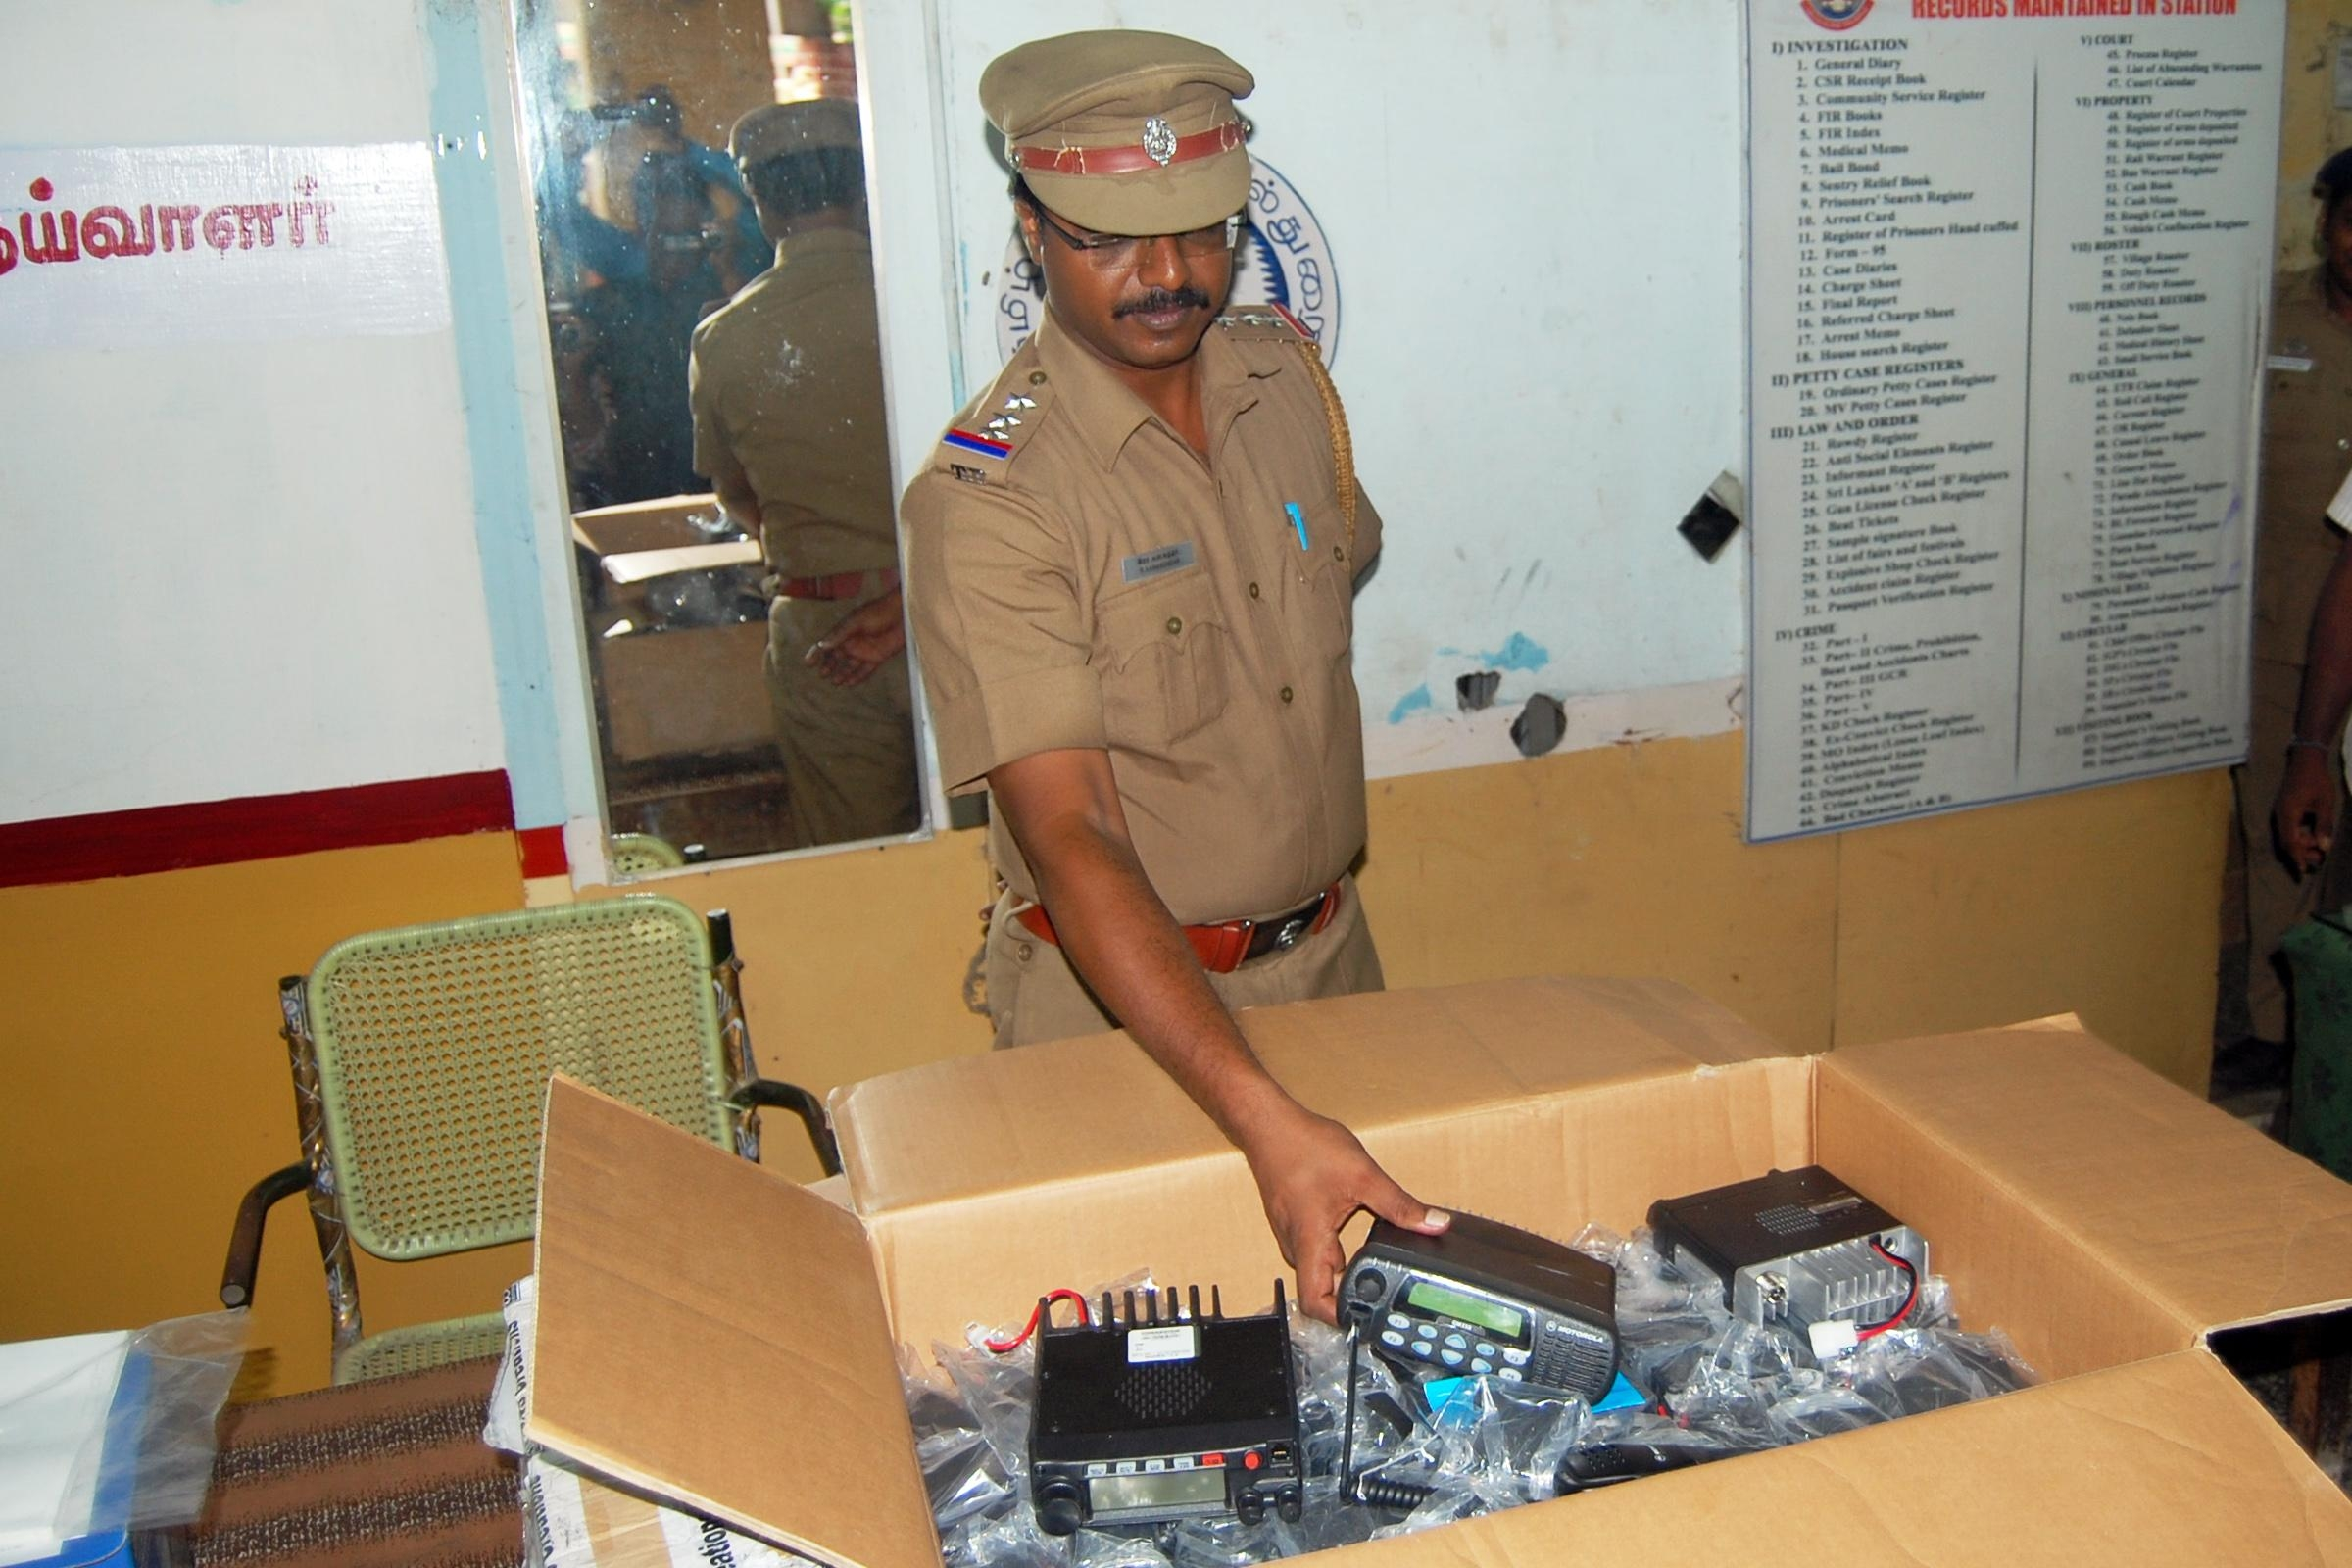 wirlless seized in tuticorin